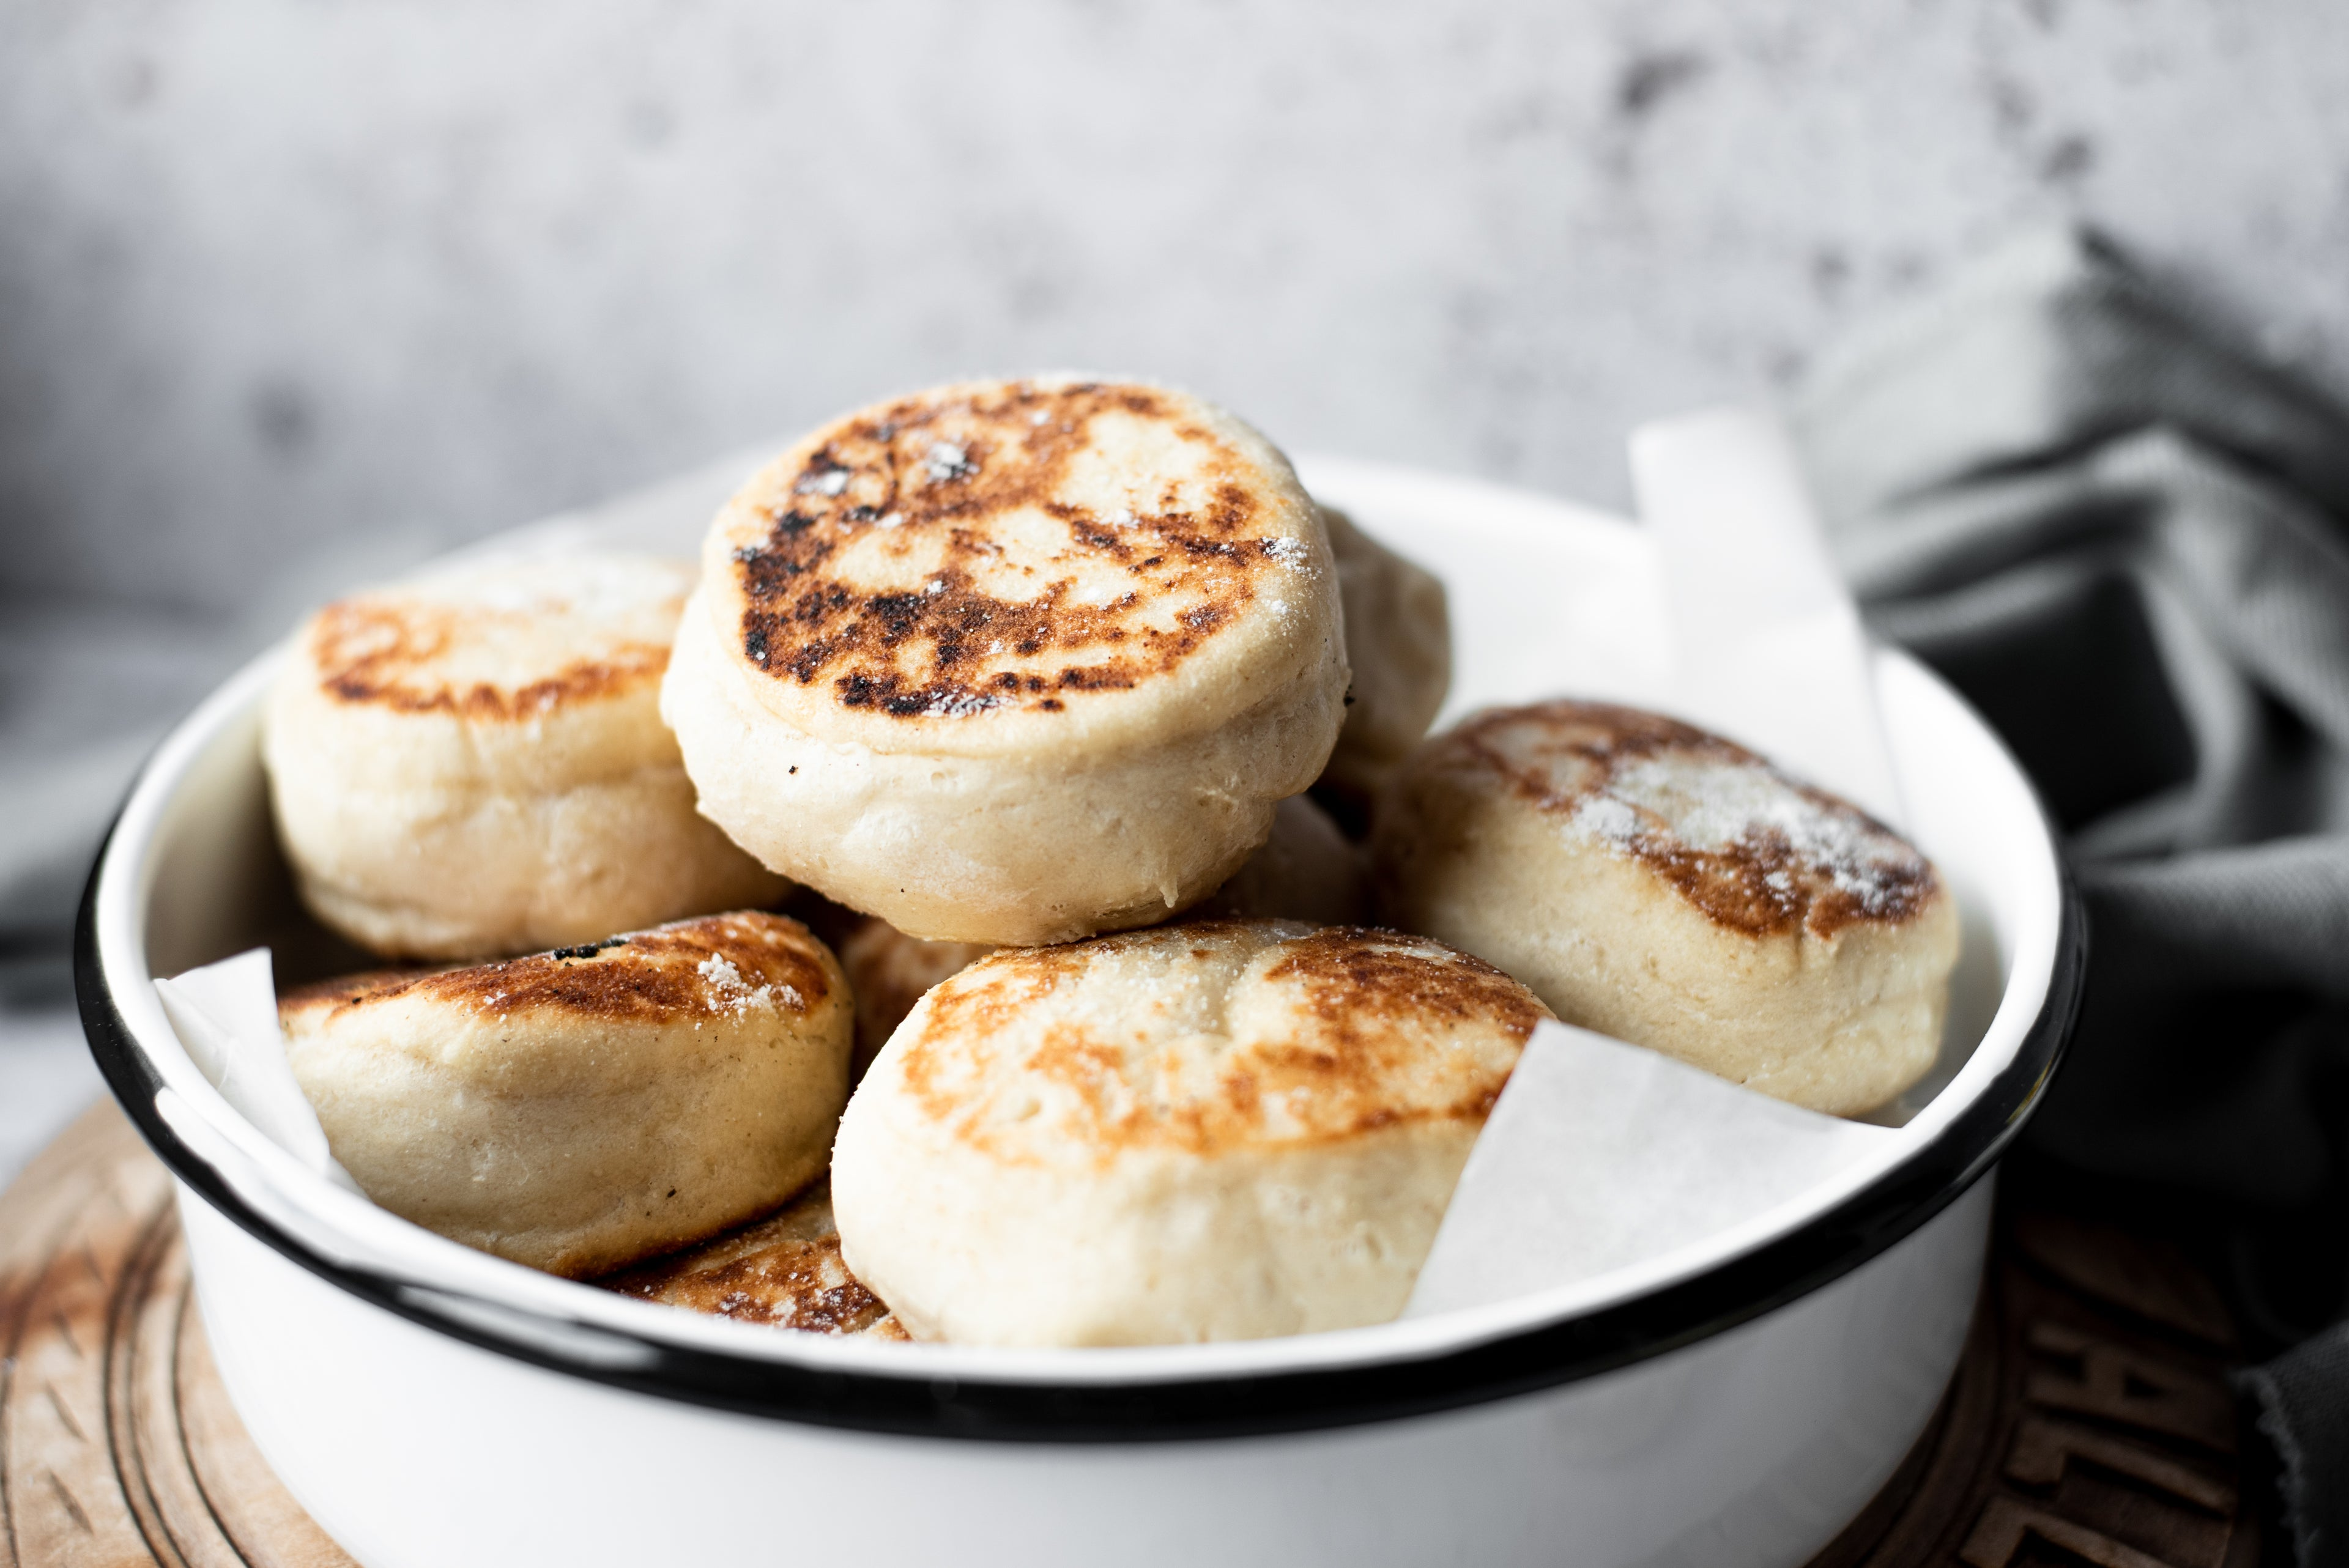 Allinsons-English-Muffins-FULL-RES-5.jpg